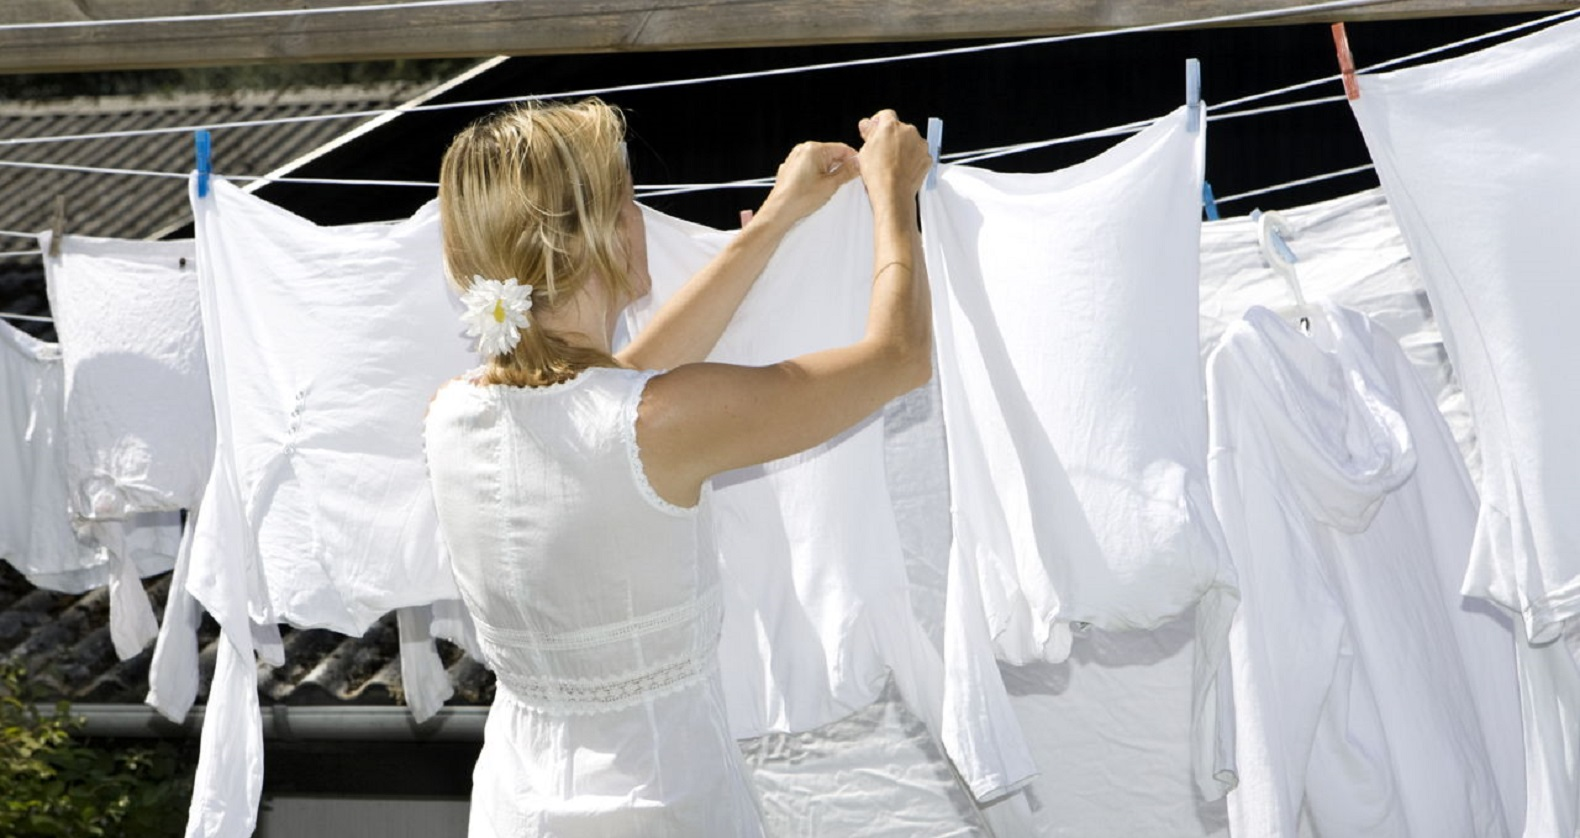 1280-172924983-drying-white-clothes